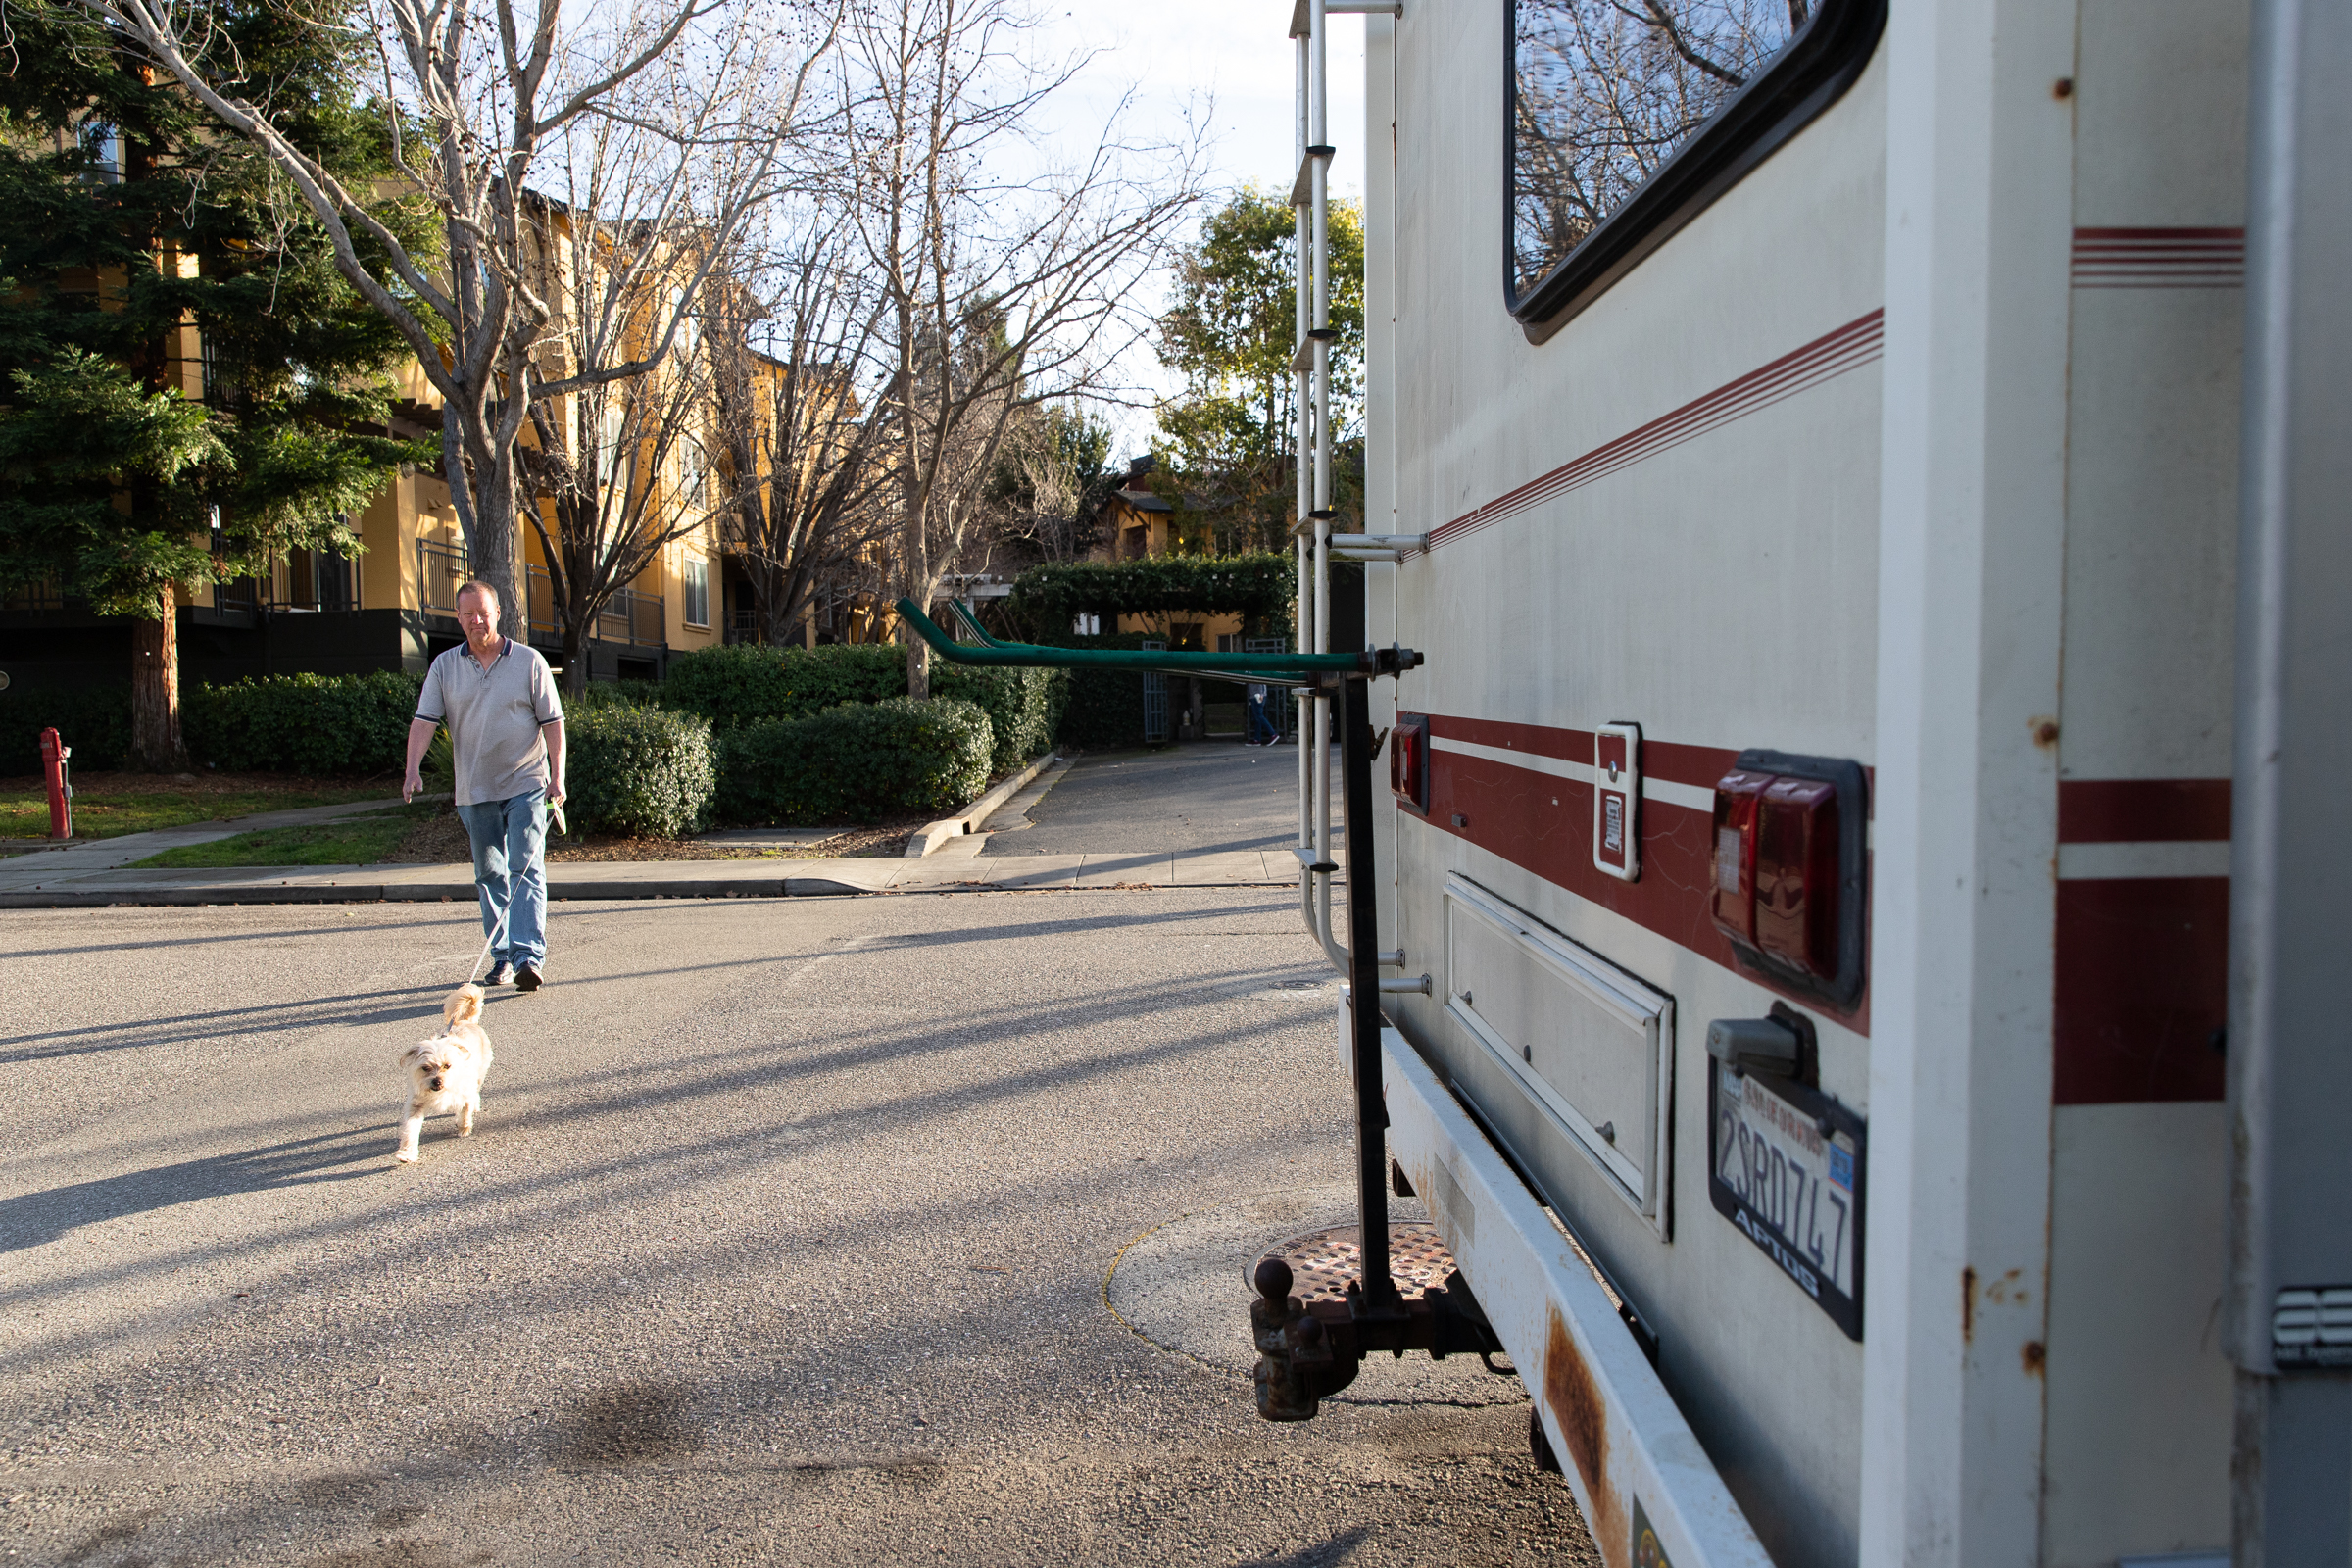 Scott Rodvold walks Winnie by the apartment he used to live in in Mountain View, California, on March 8.